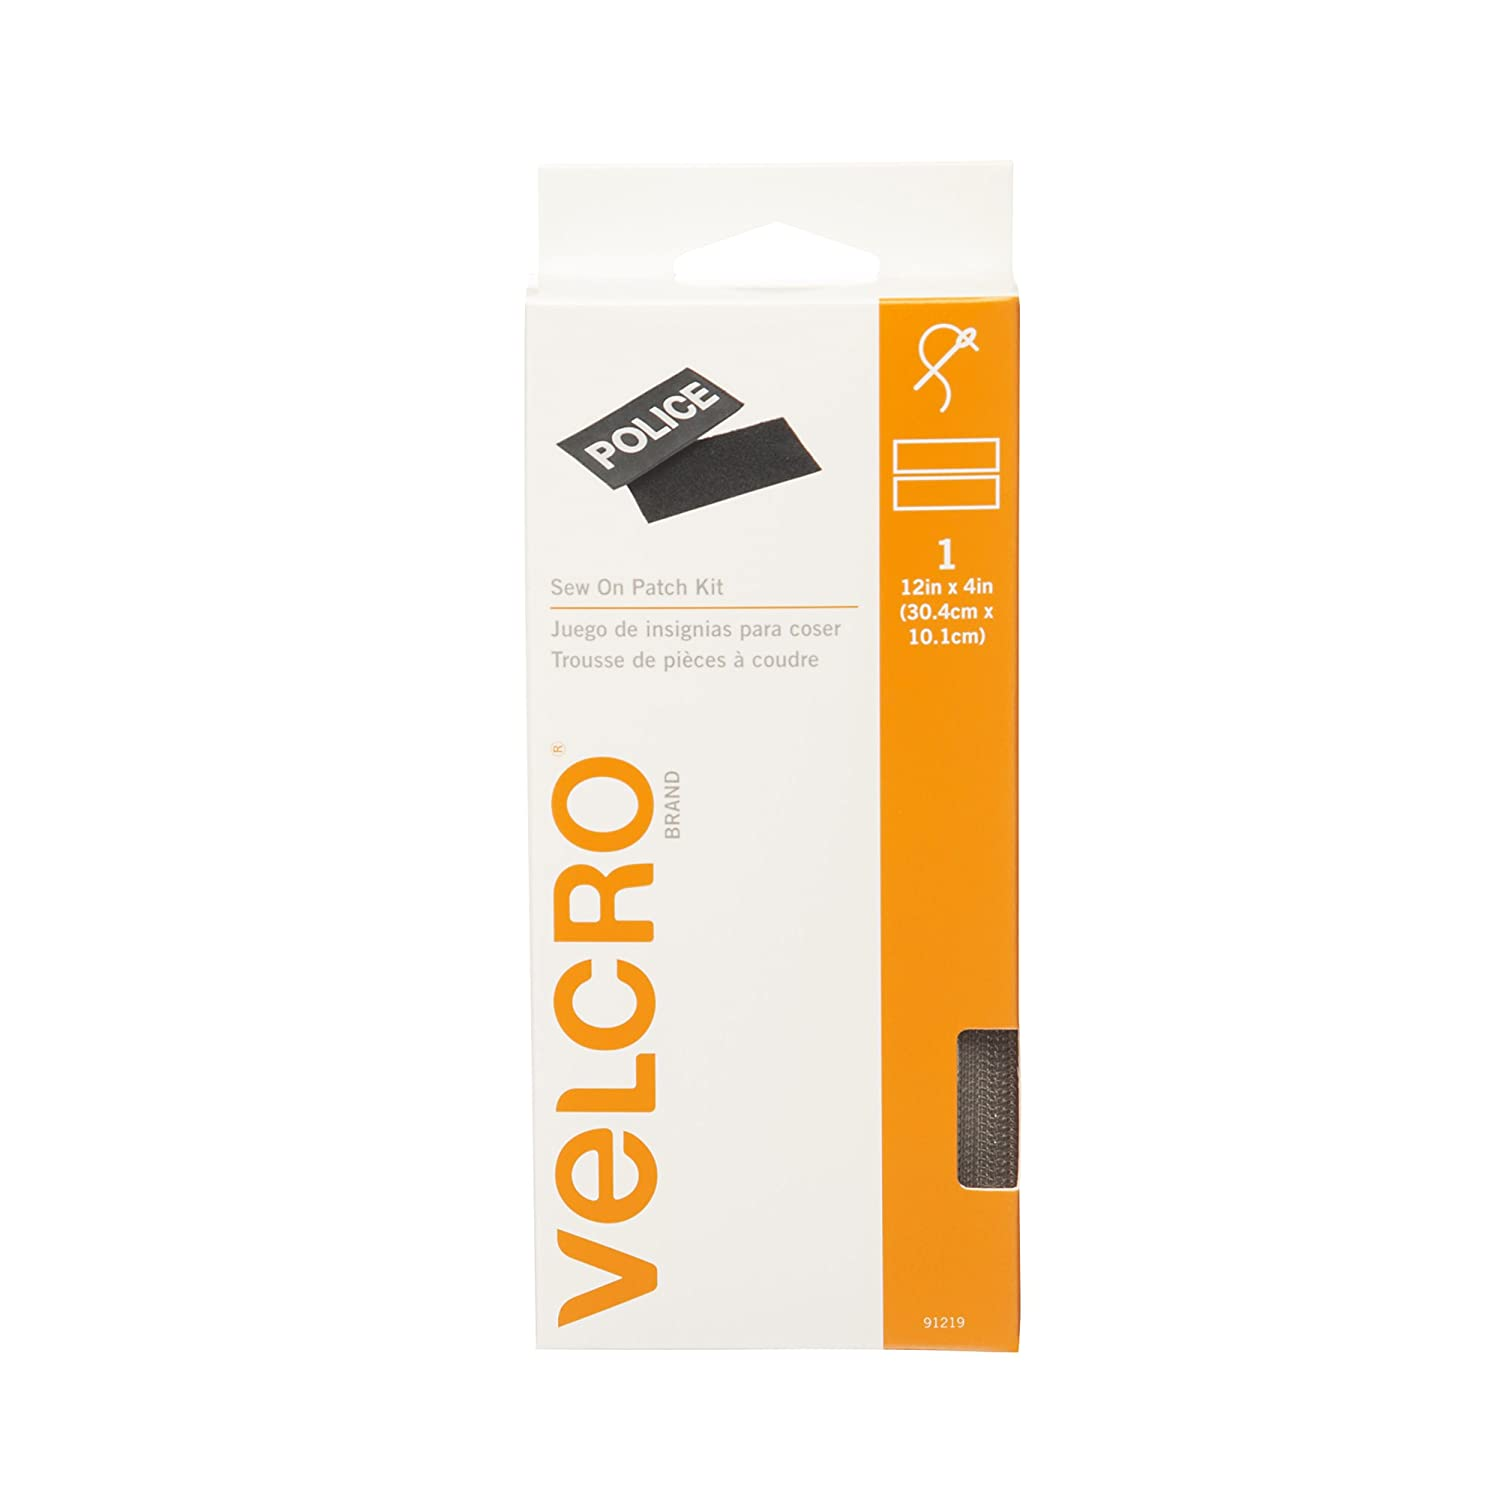 VELCRO Brand - Sew On Fasteners - Sew On Patch Kit 12 x 4 - Sage Velcro USA Inc. 90178